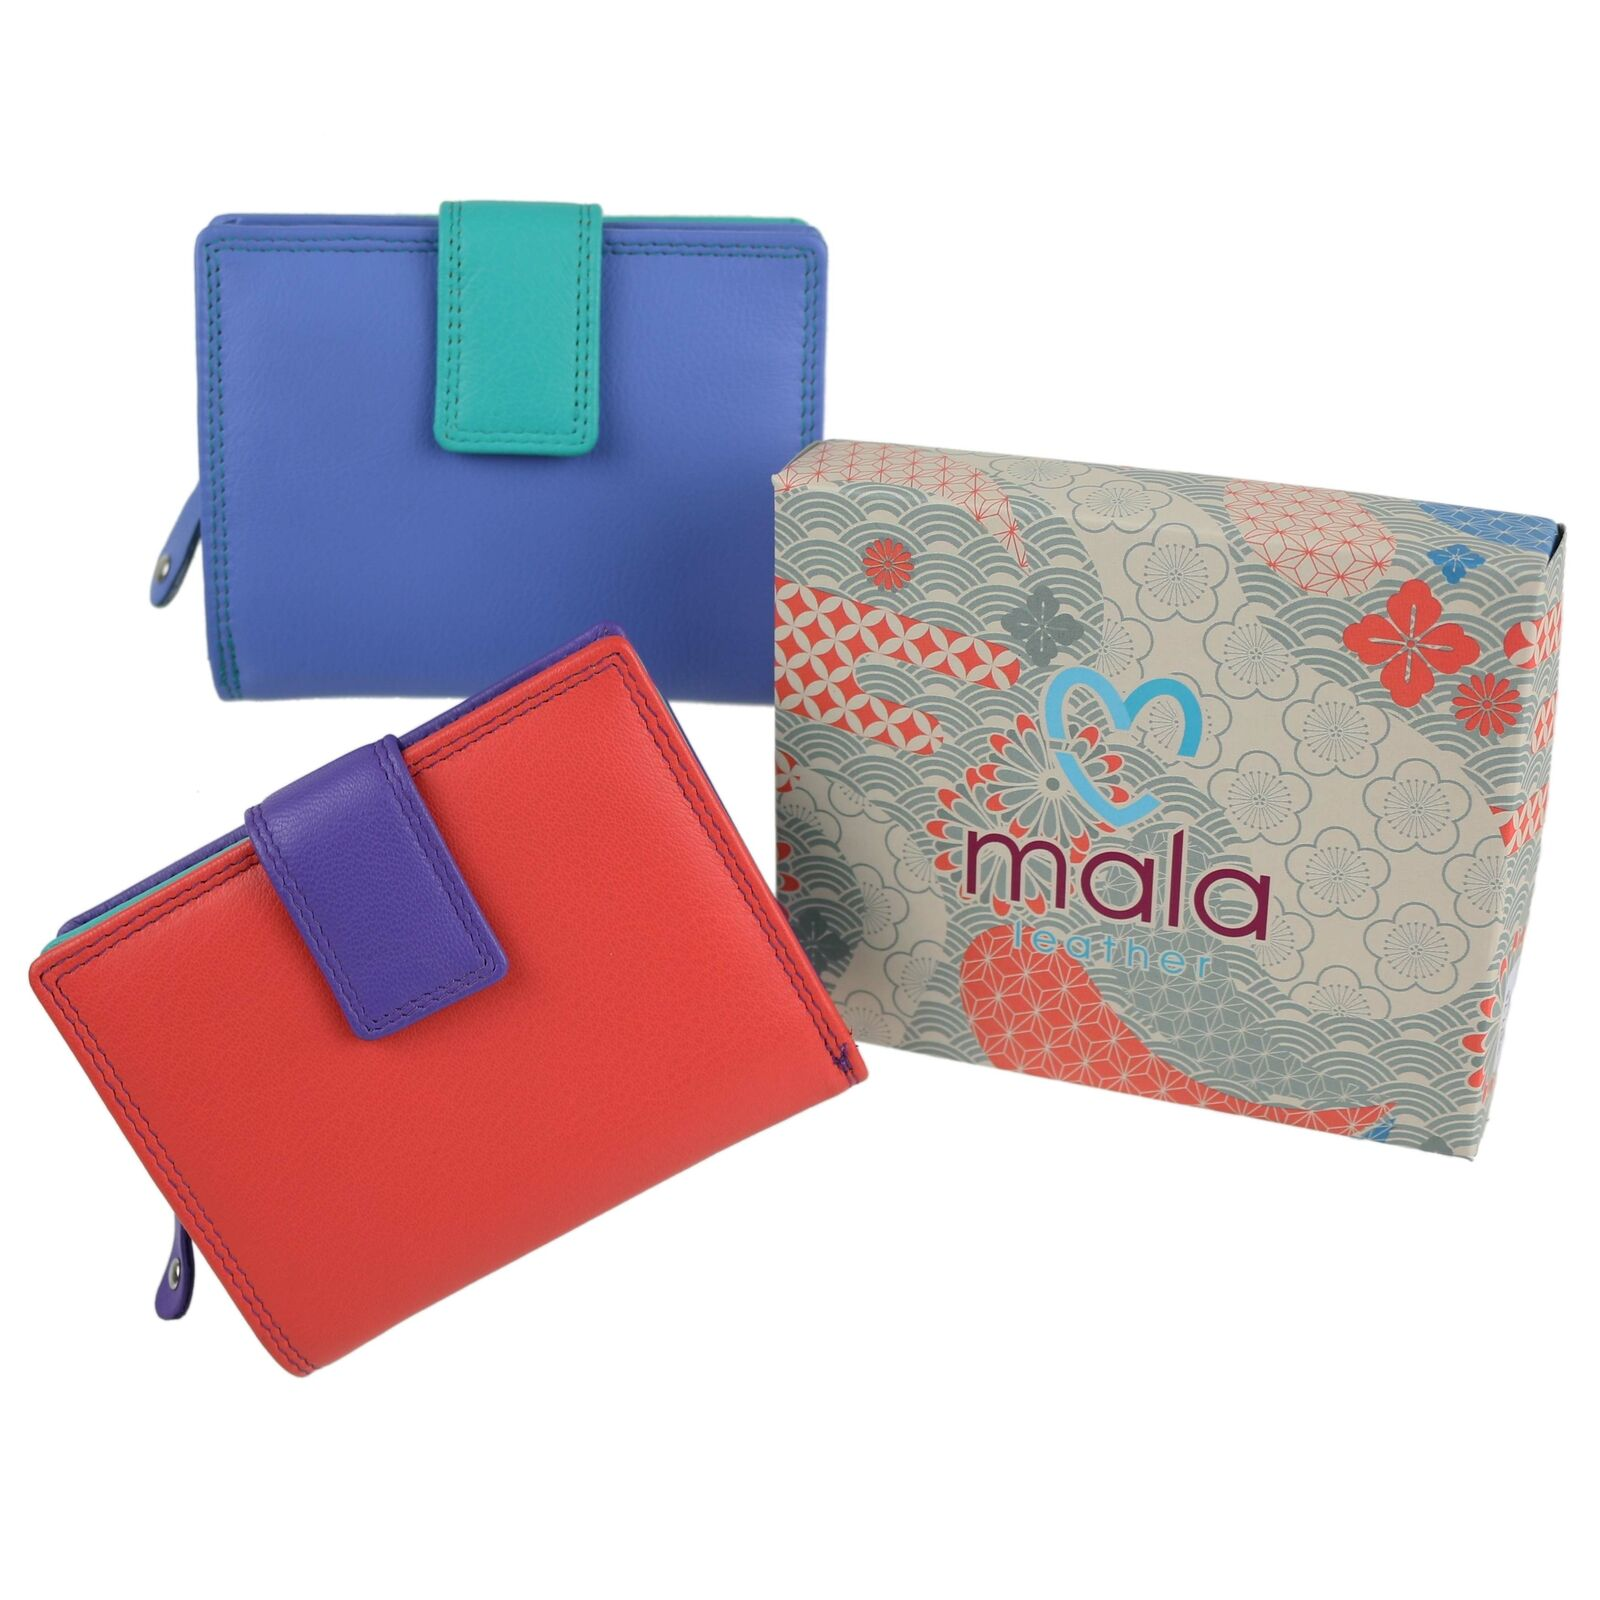 Mala Leather Ladies Multi-Coloured Compact Purse/Wallet Grafton Collection